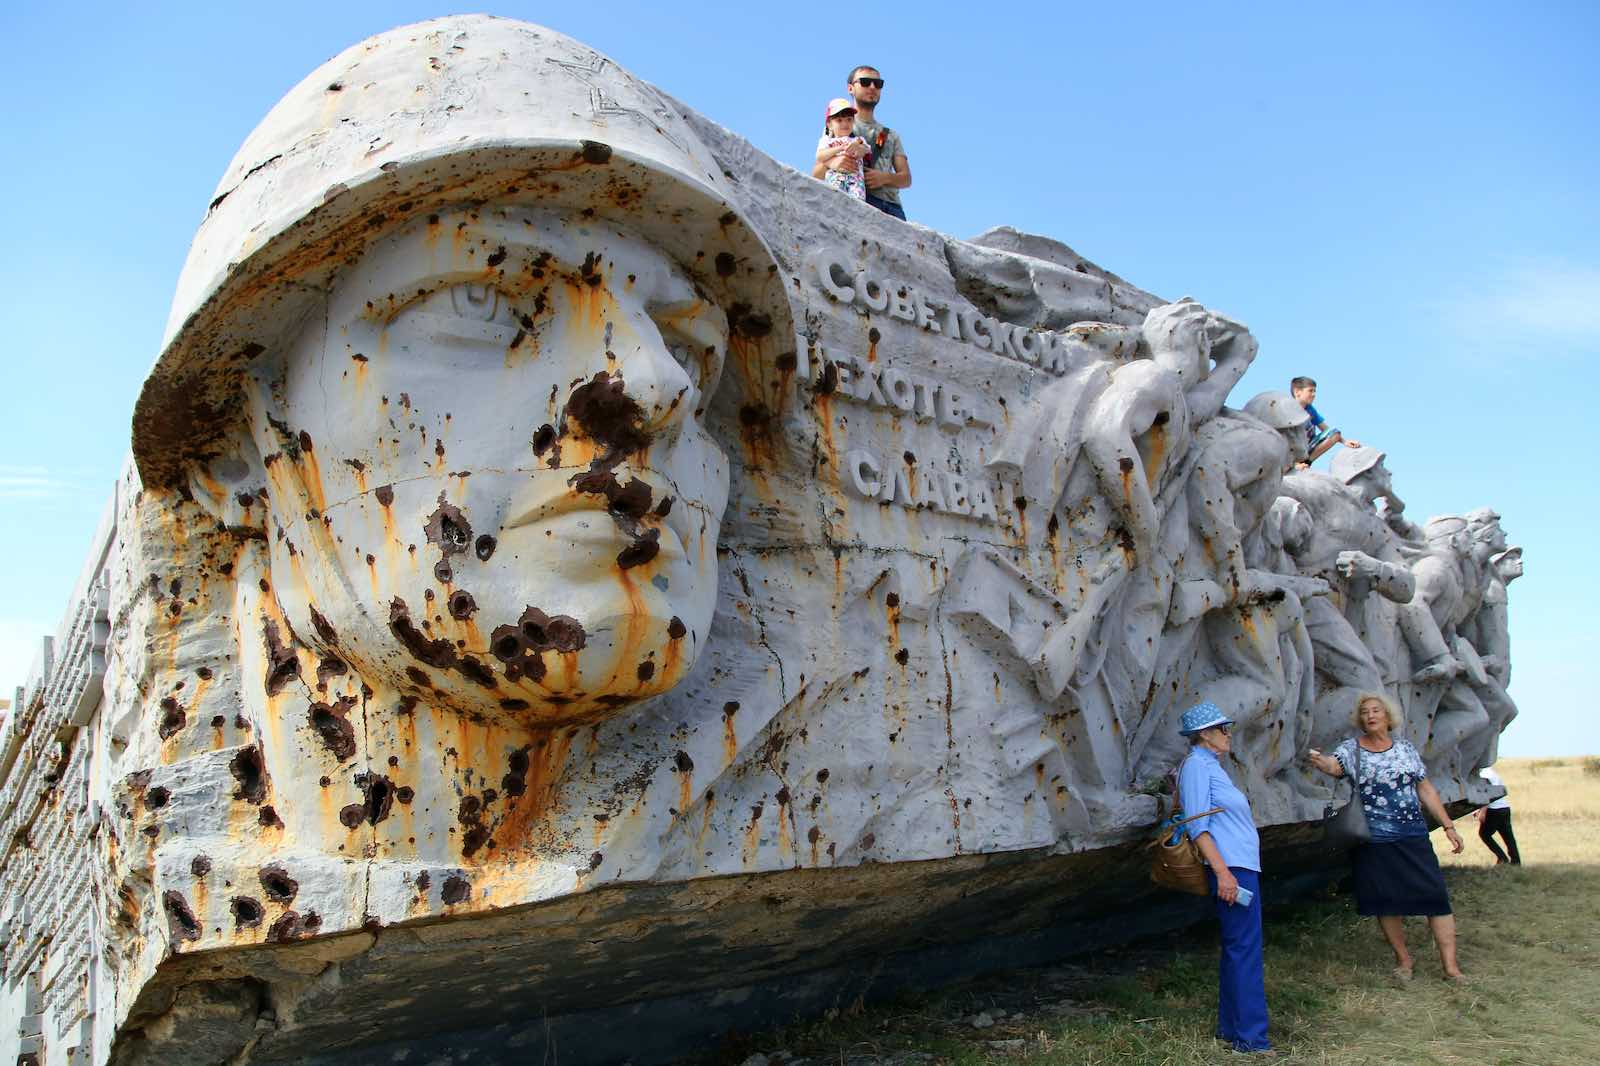 A war memorial at Savur-Mohyla Height marking the liberation of the Donbass region from Nazi invaders in the Second World War (Valentin Sprinchak/TASS via Getty Images)